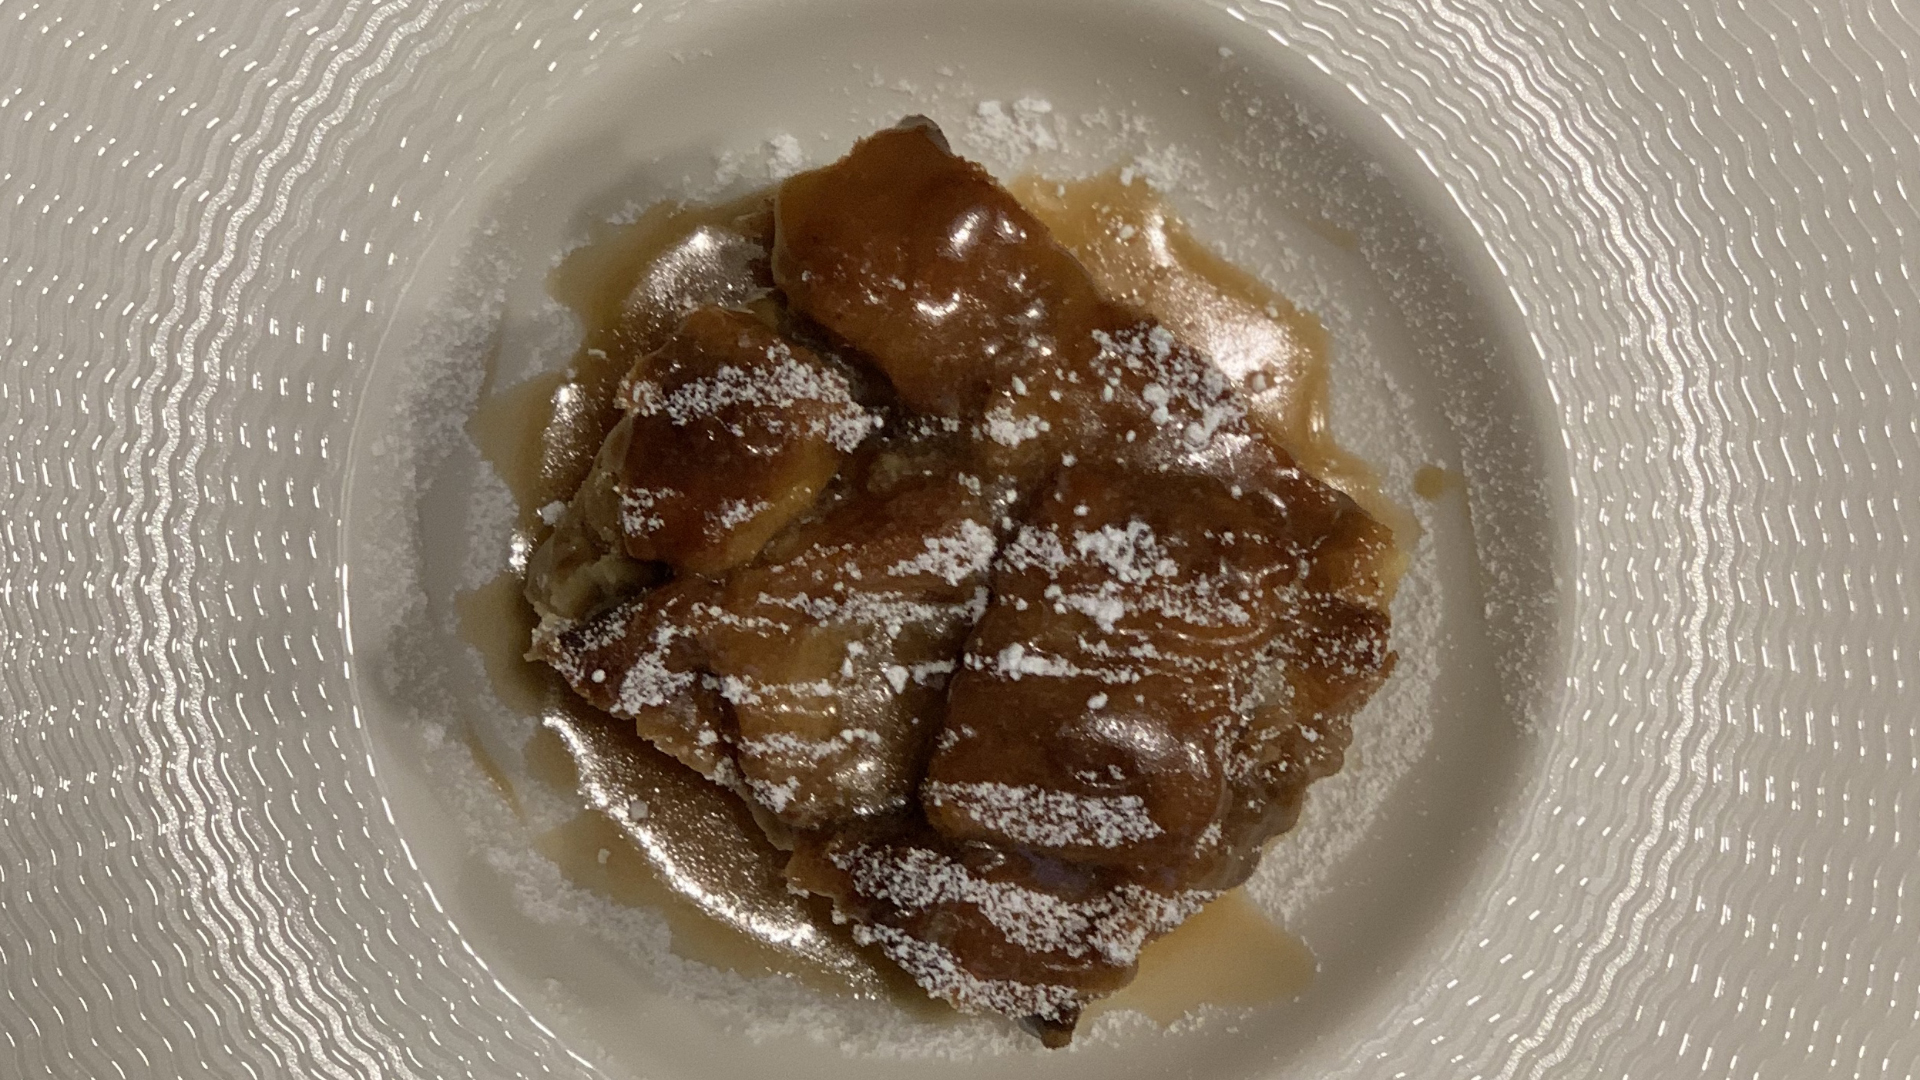 Carowinds Bread Pudding and Caramel Sauce Recipe